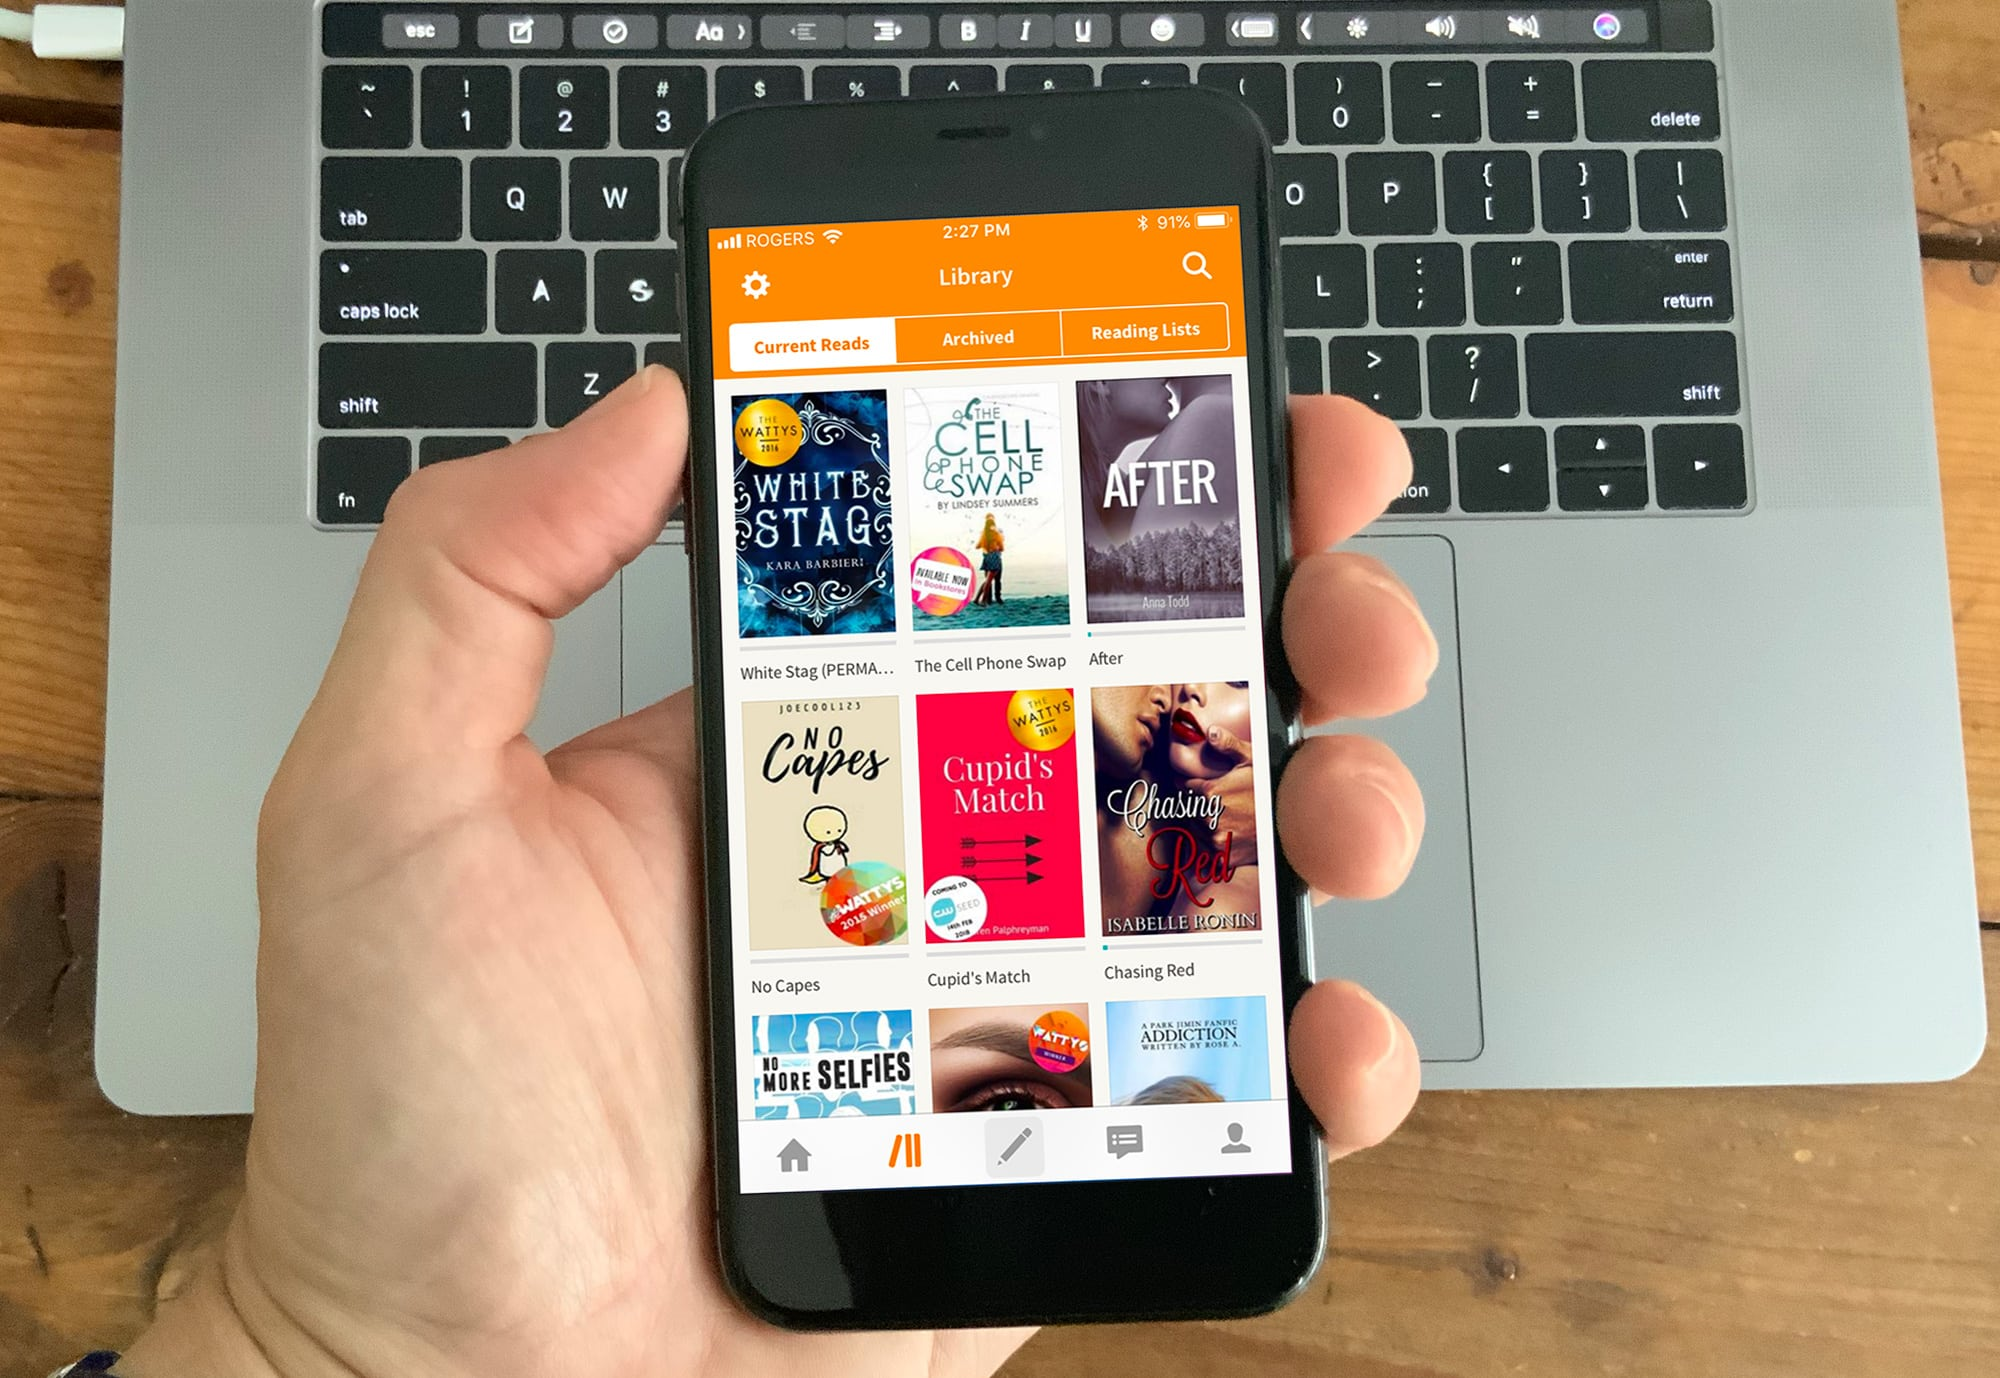 Wattpad: The social reading and writing app that's transforming the entertainment industry